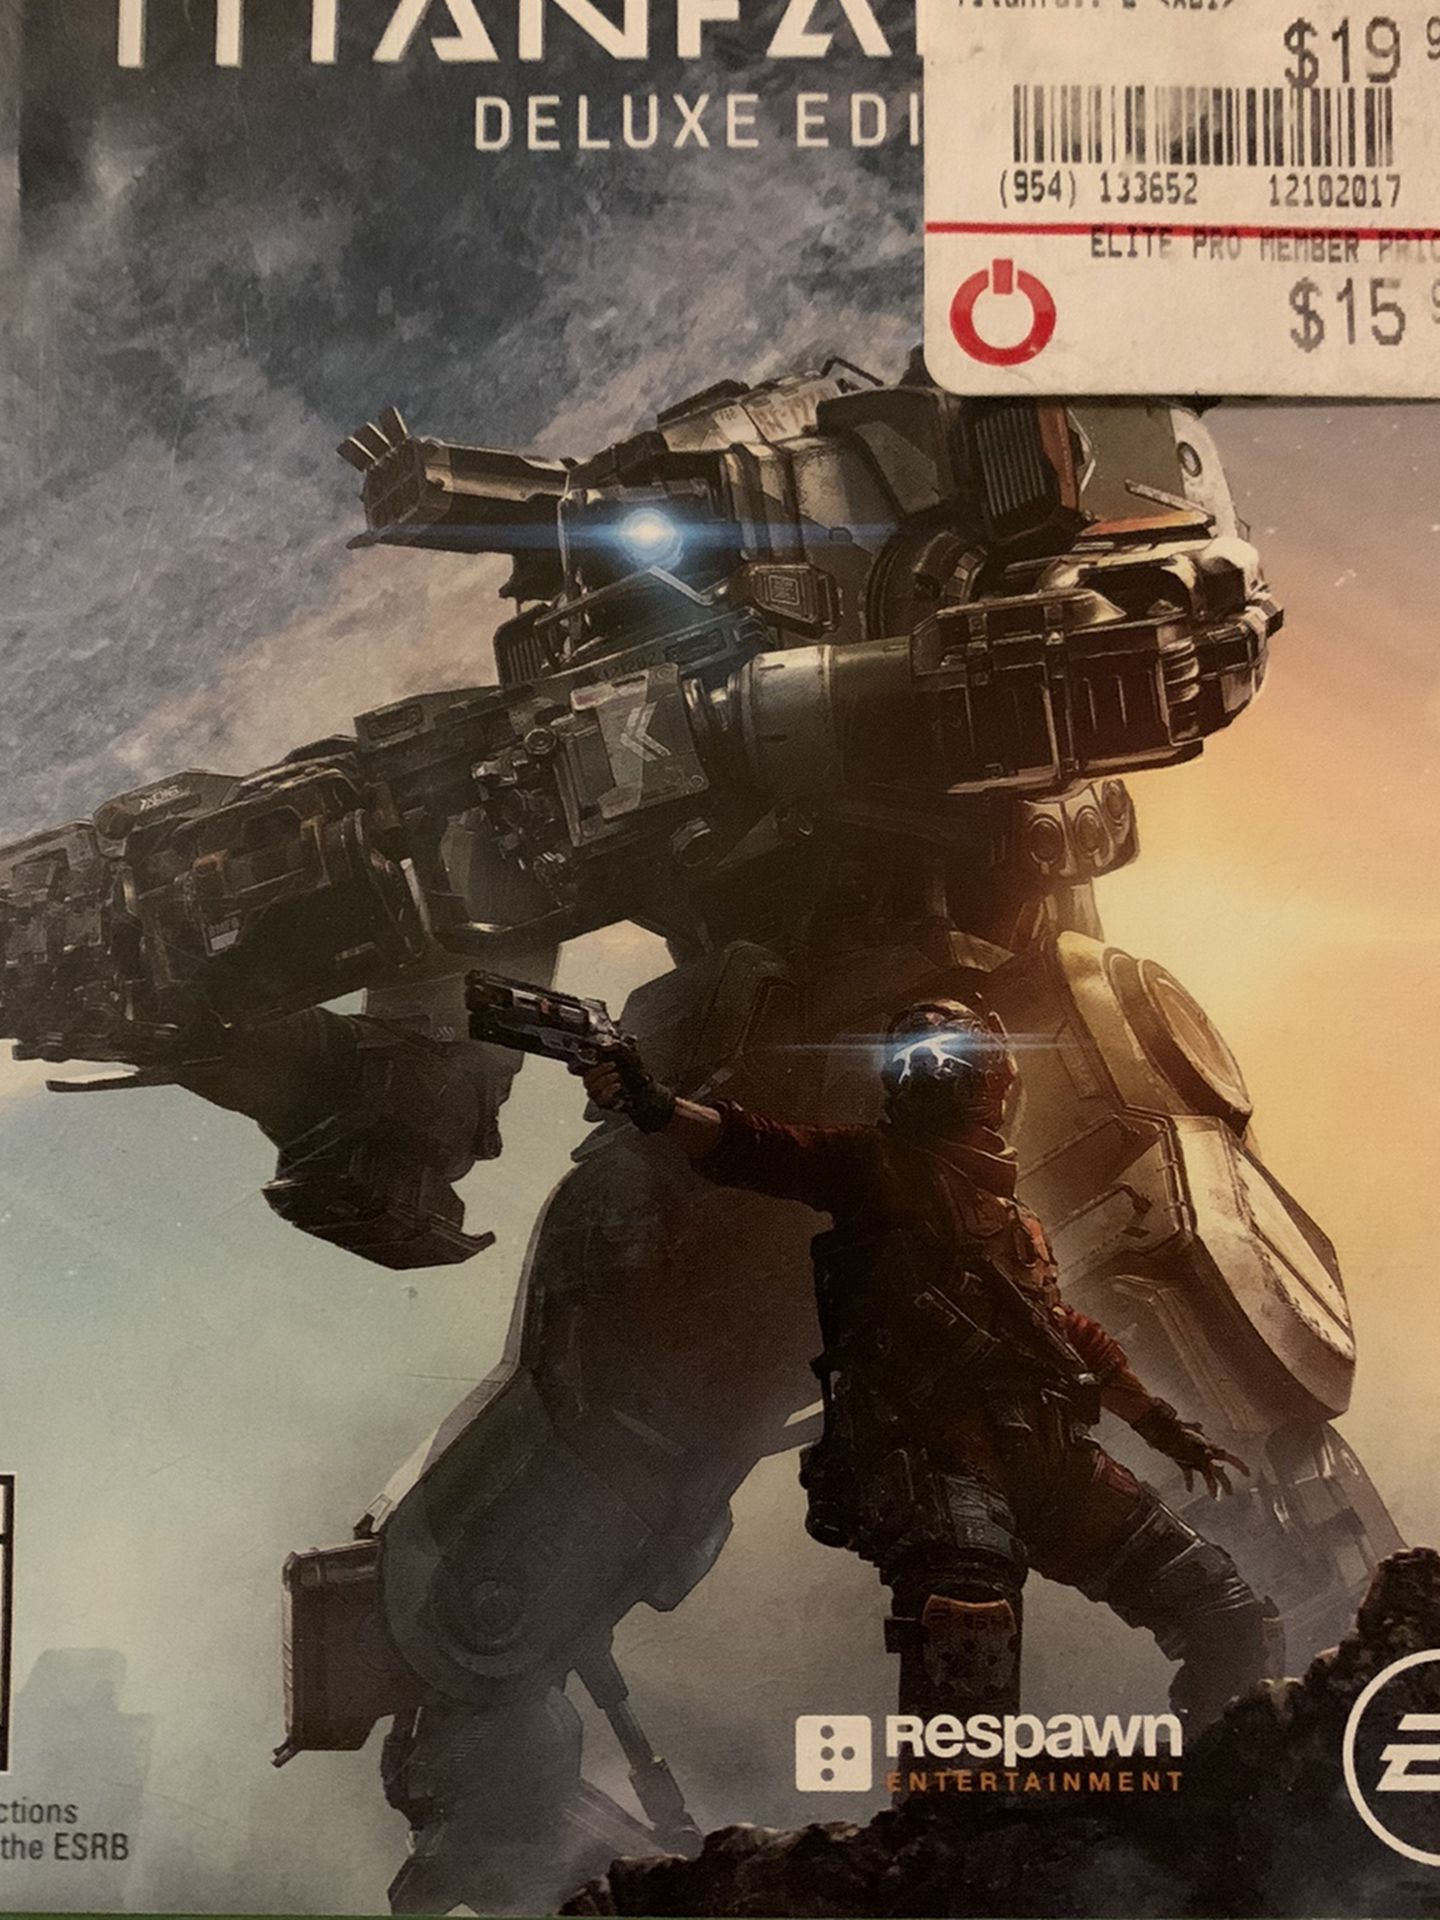 Titanfall 2 Deluxe Edition For XBox One